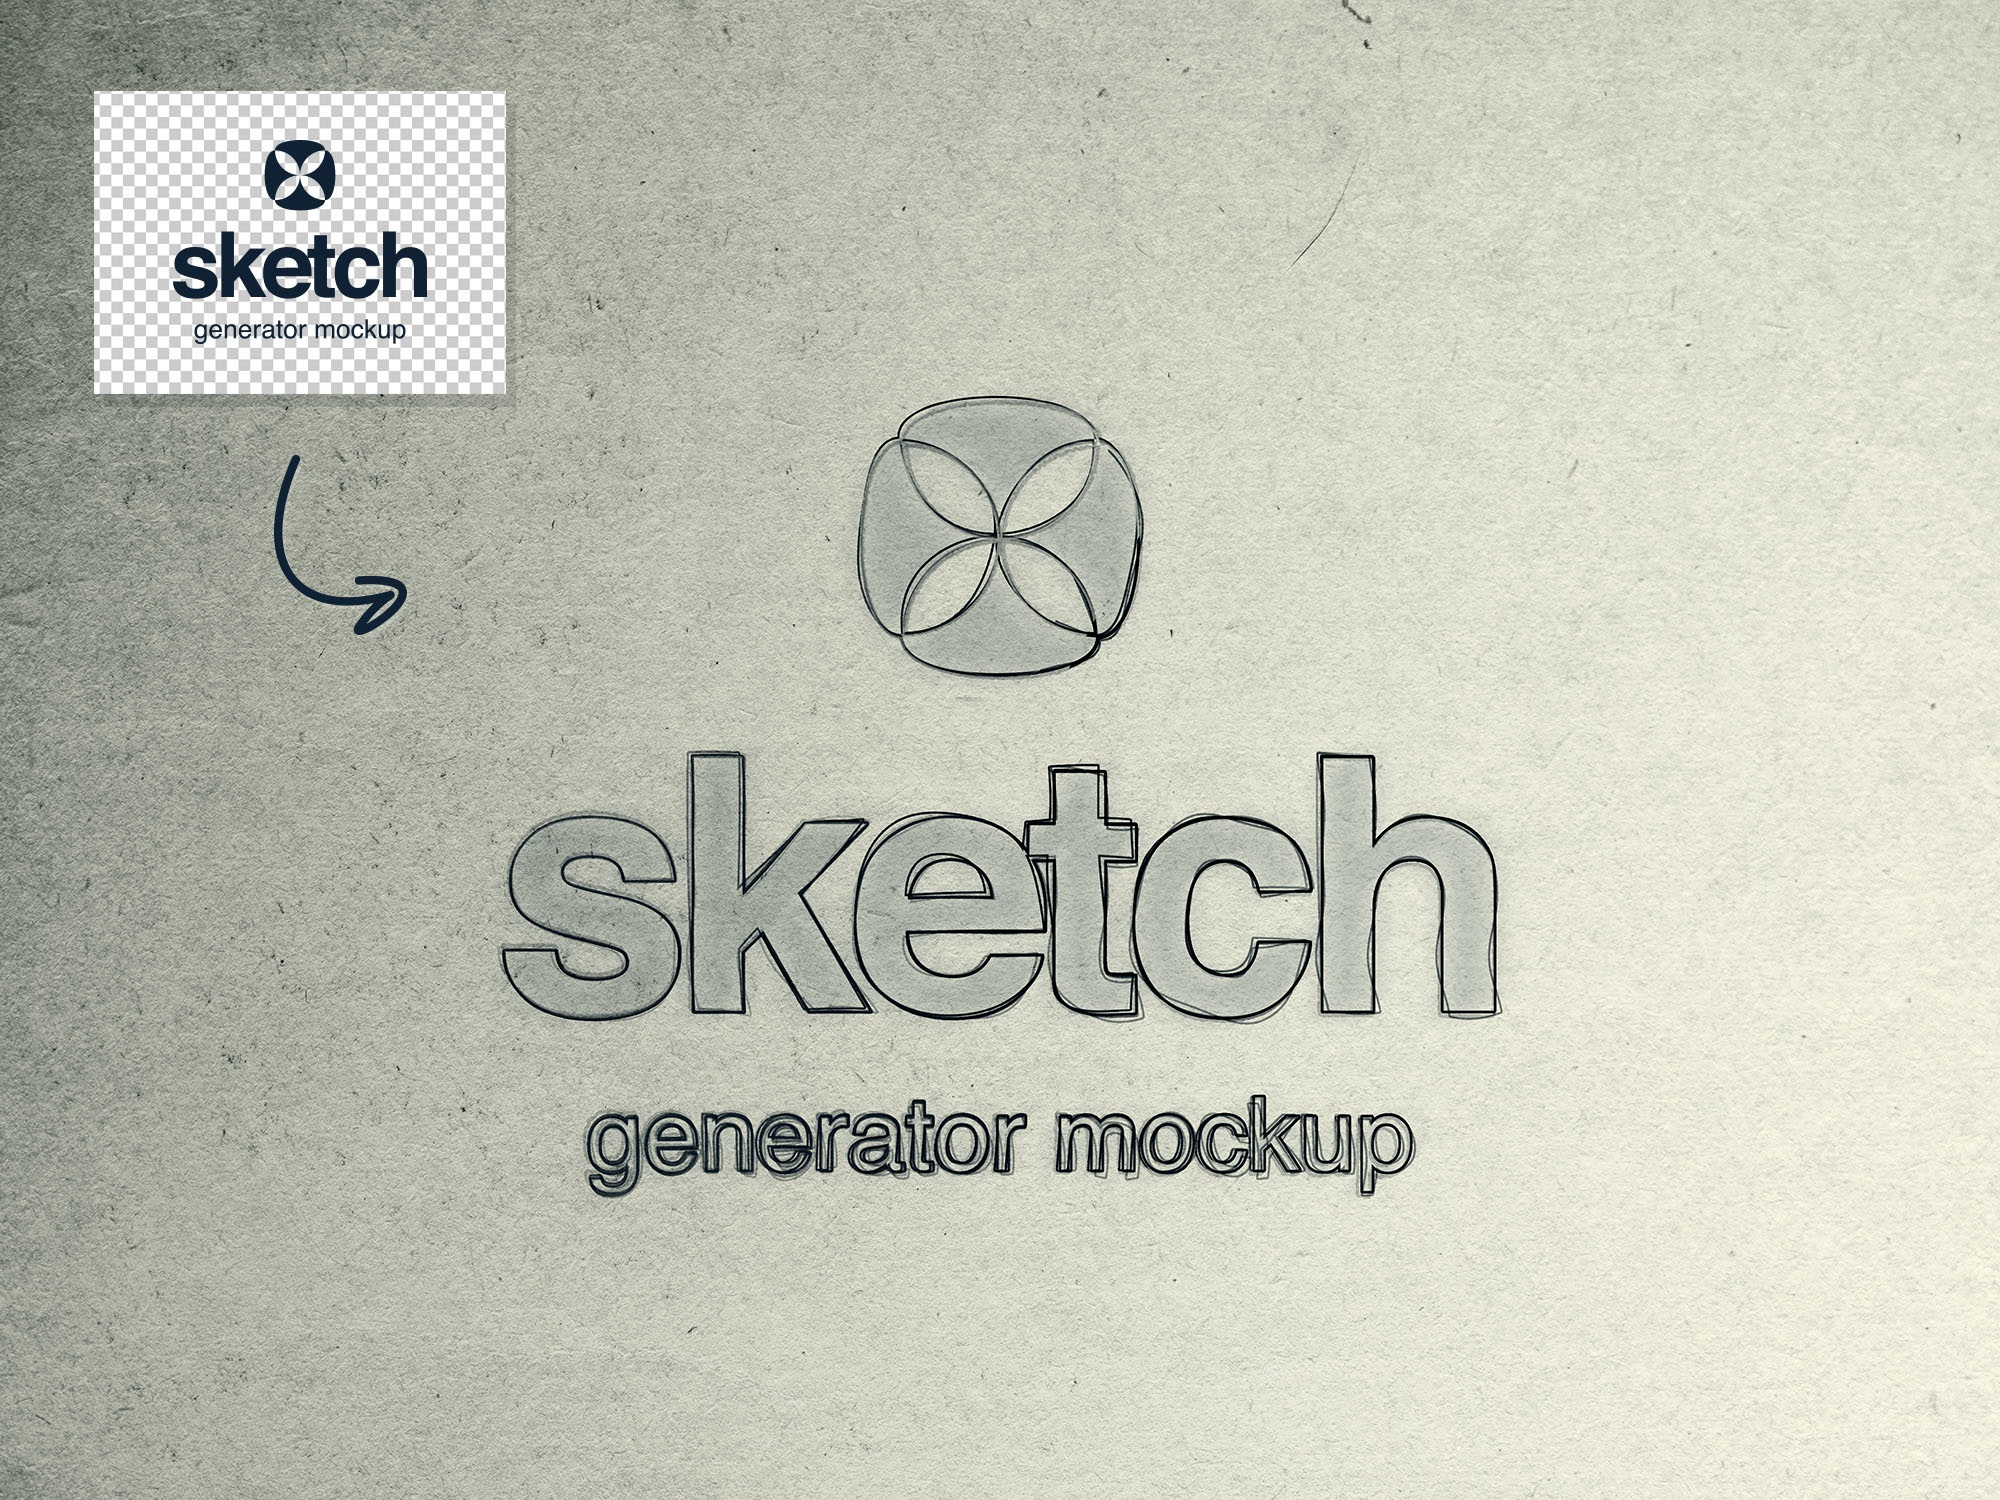 Free Sketch Generator Mockup by Wassim ✈ on Dribbble